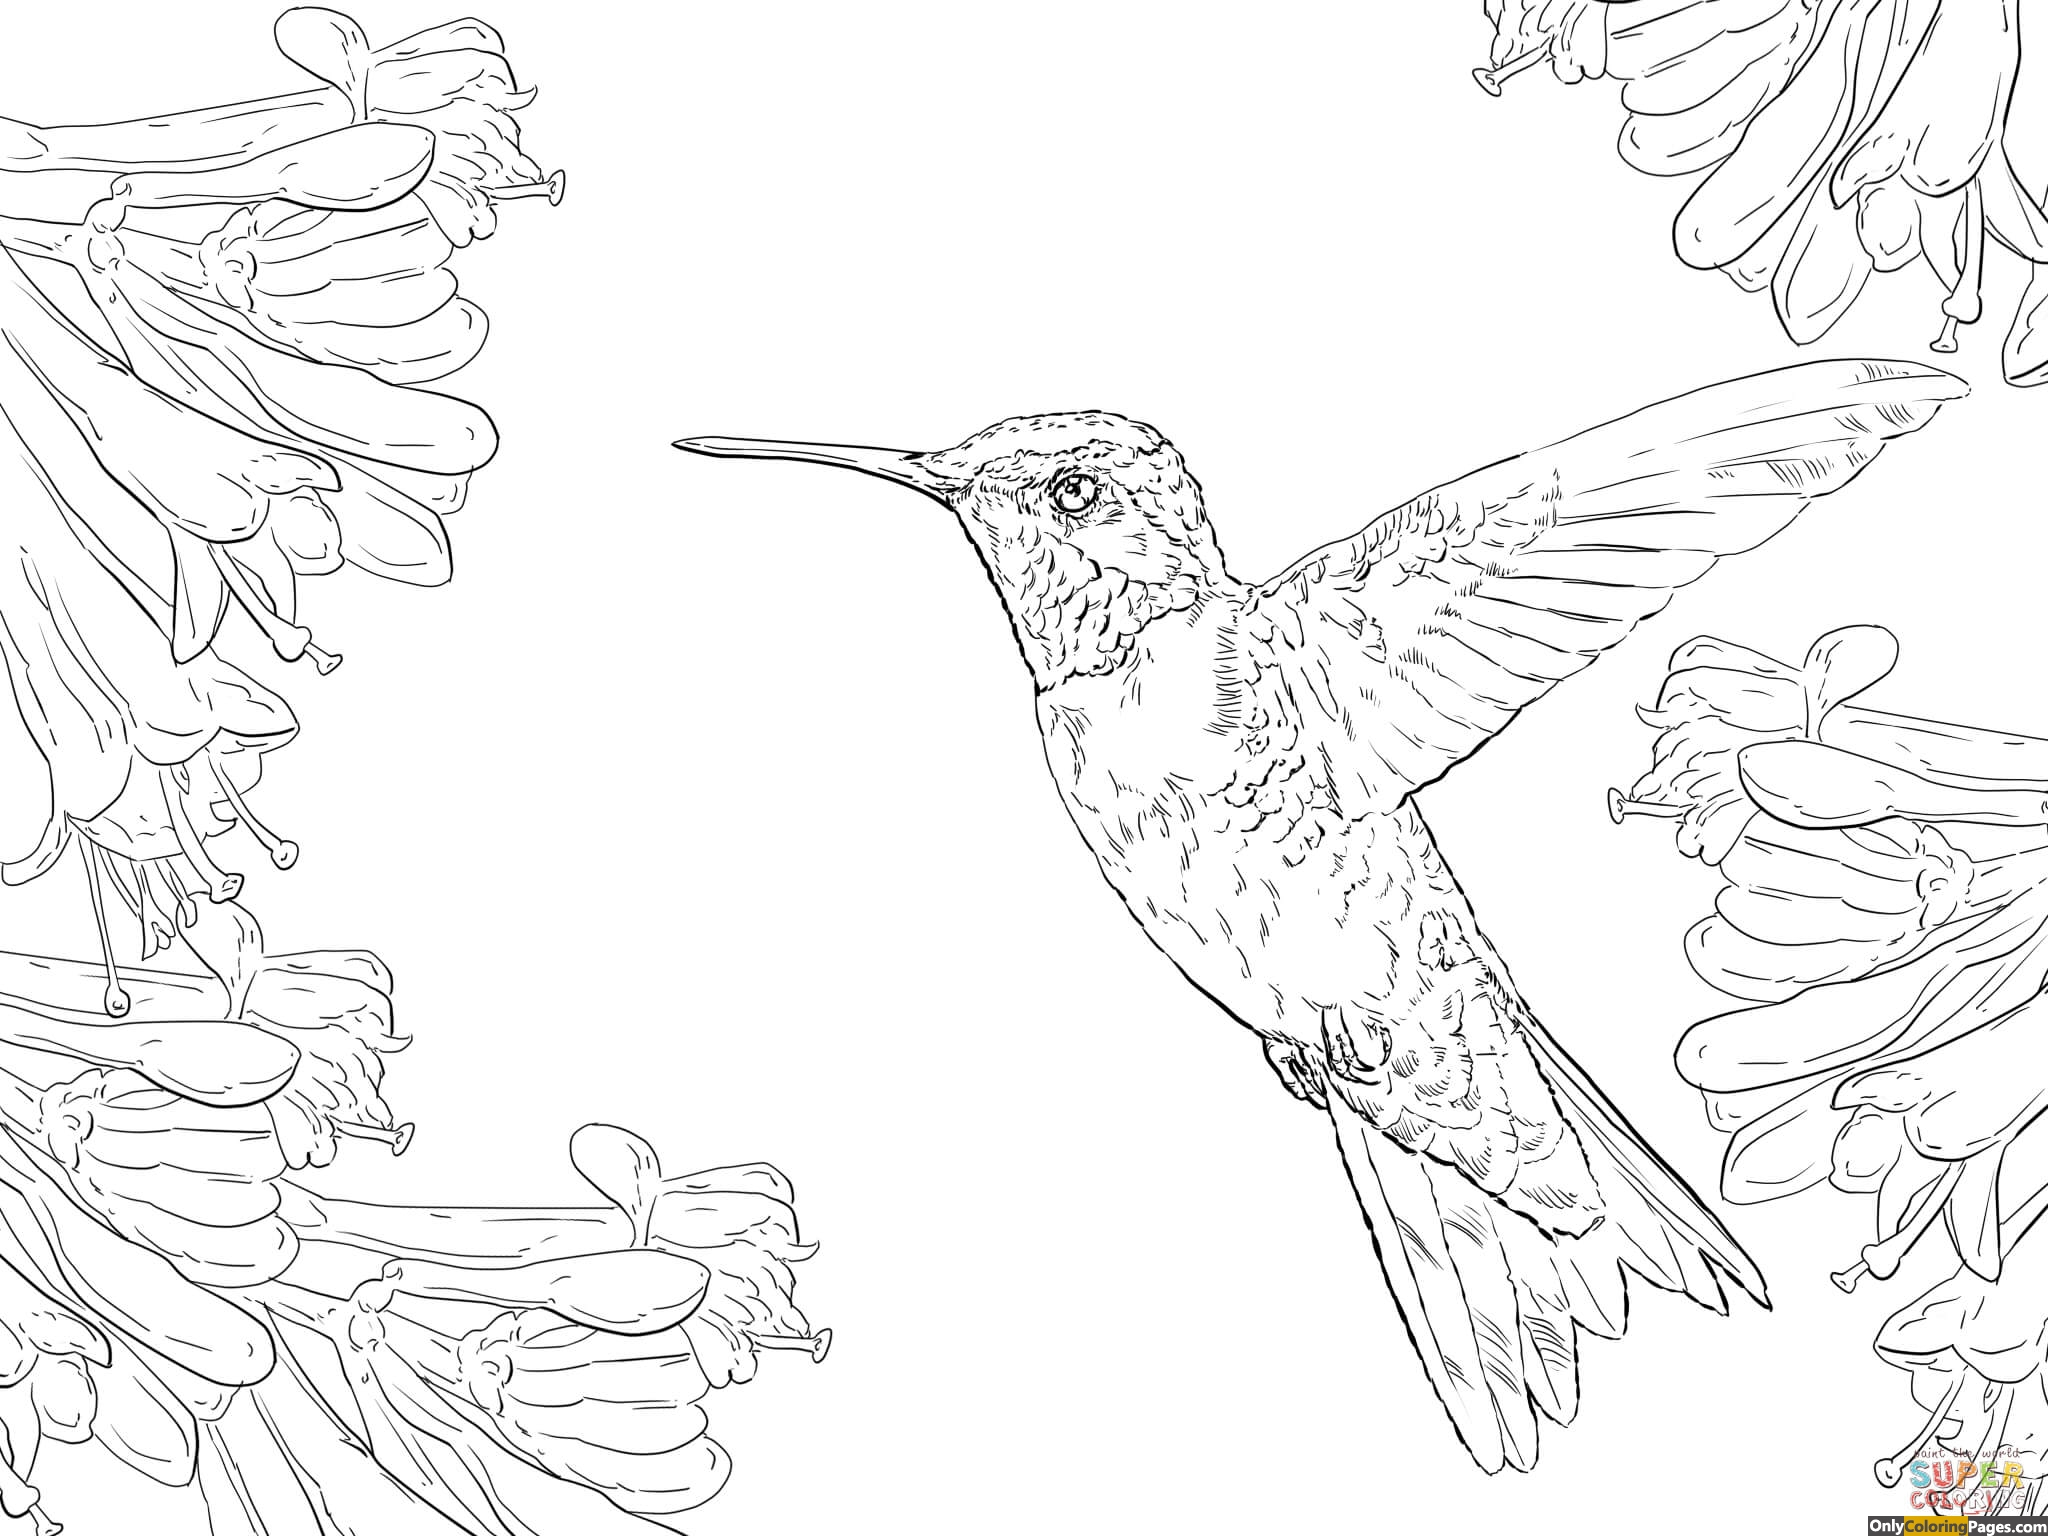 Ruby throated hummingbird coloring pages free printable for Coloring pages of hummingbirds